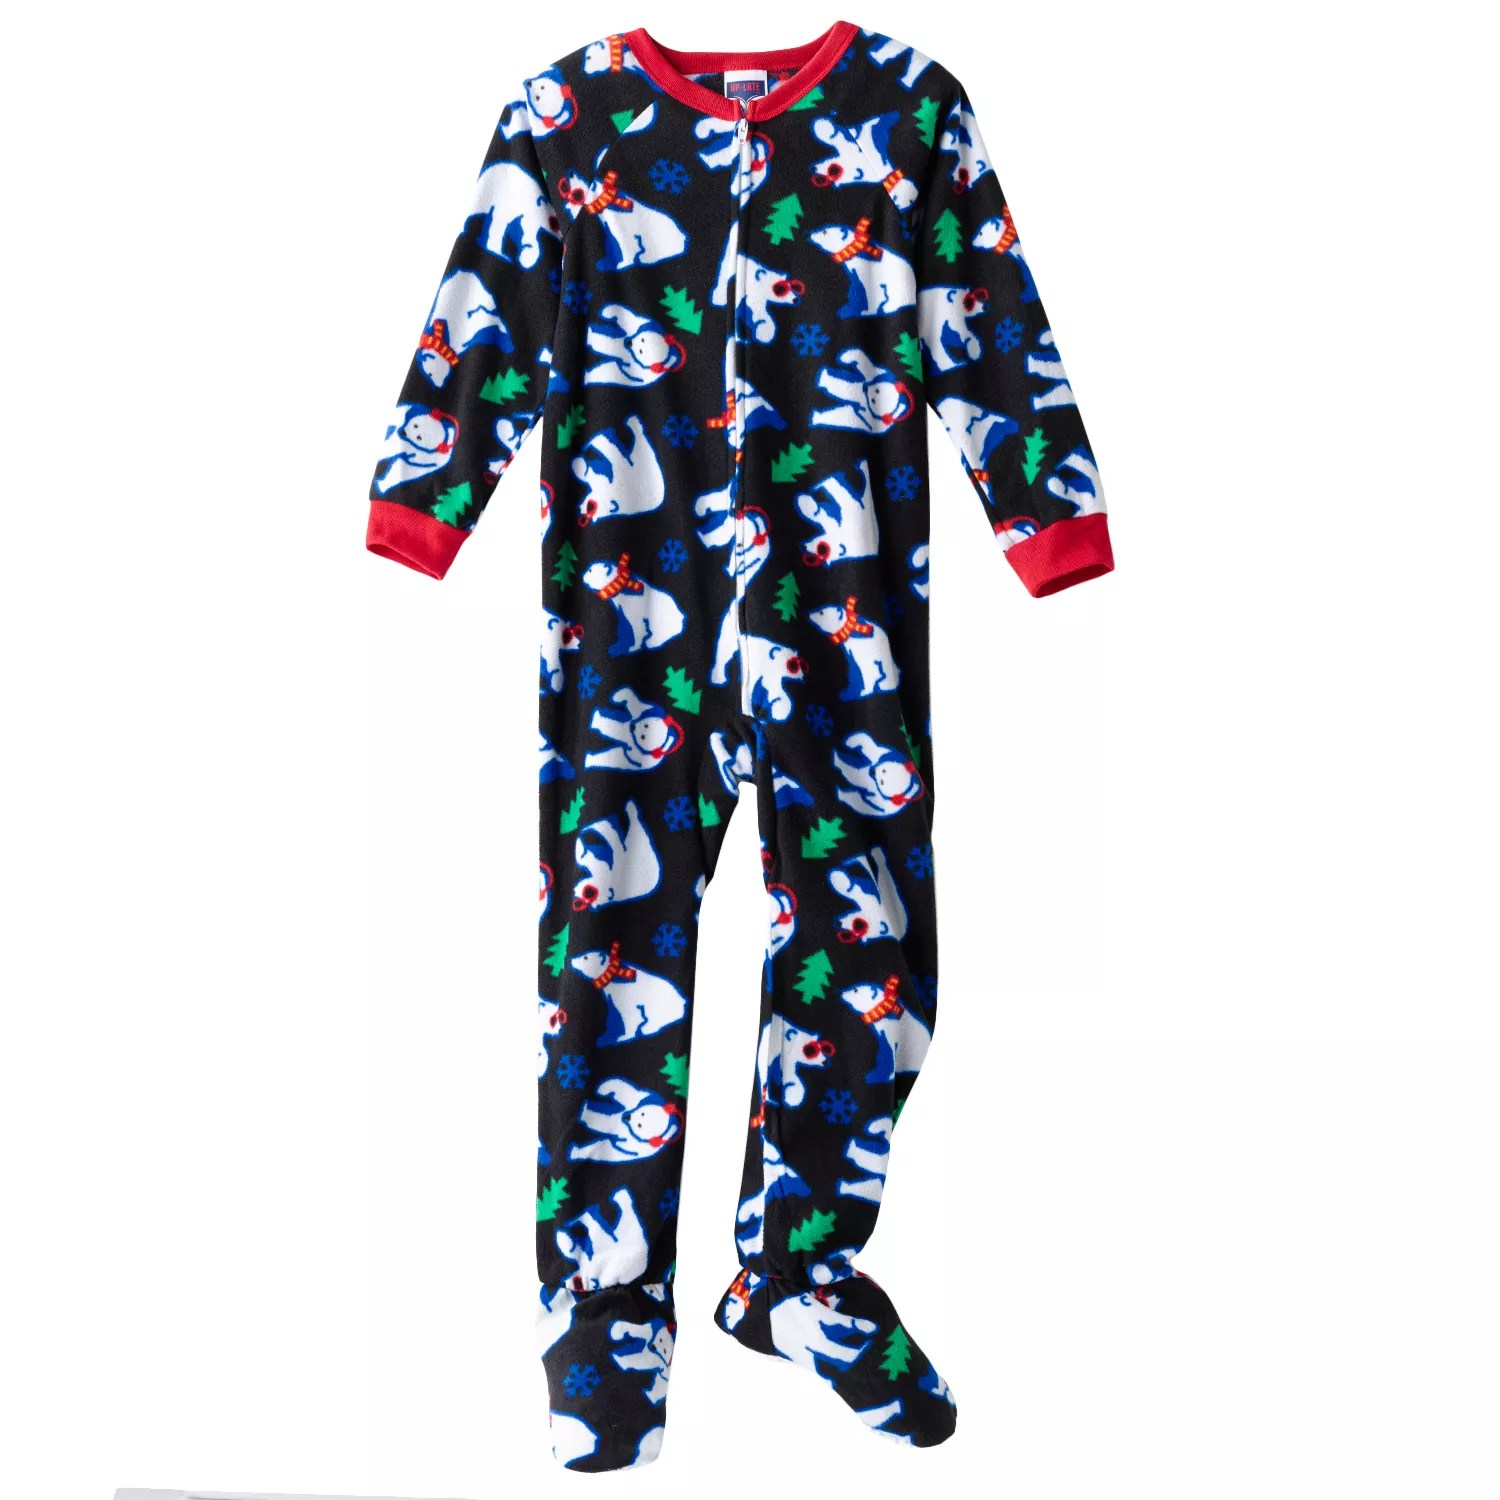 Boys Fleece Footed Pajamas